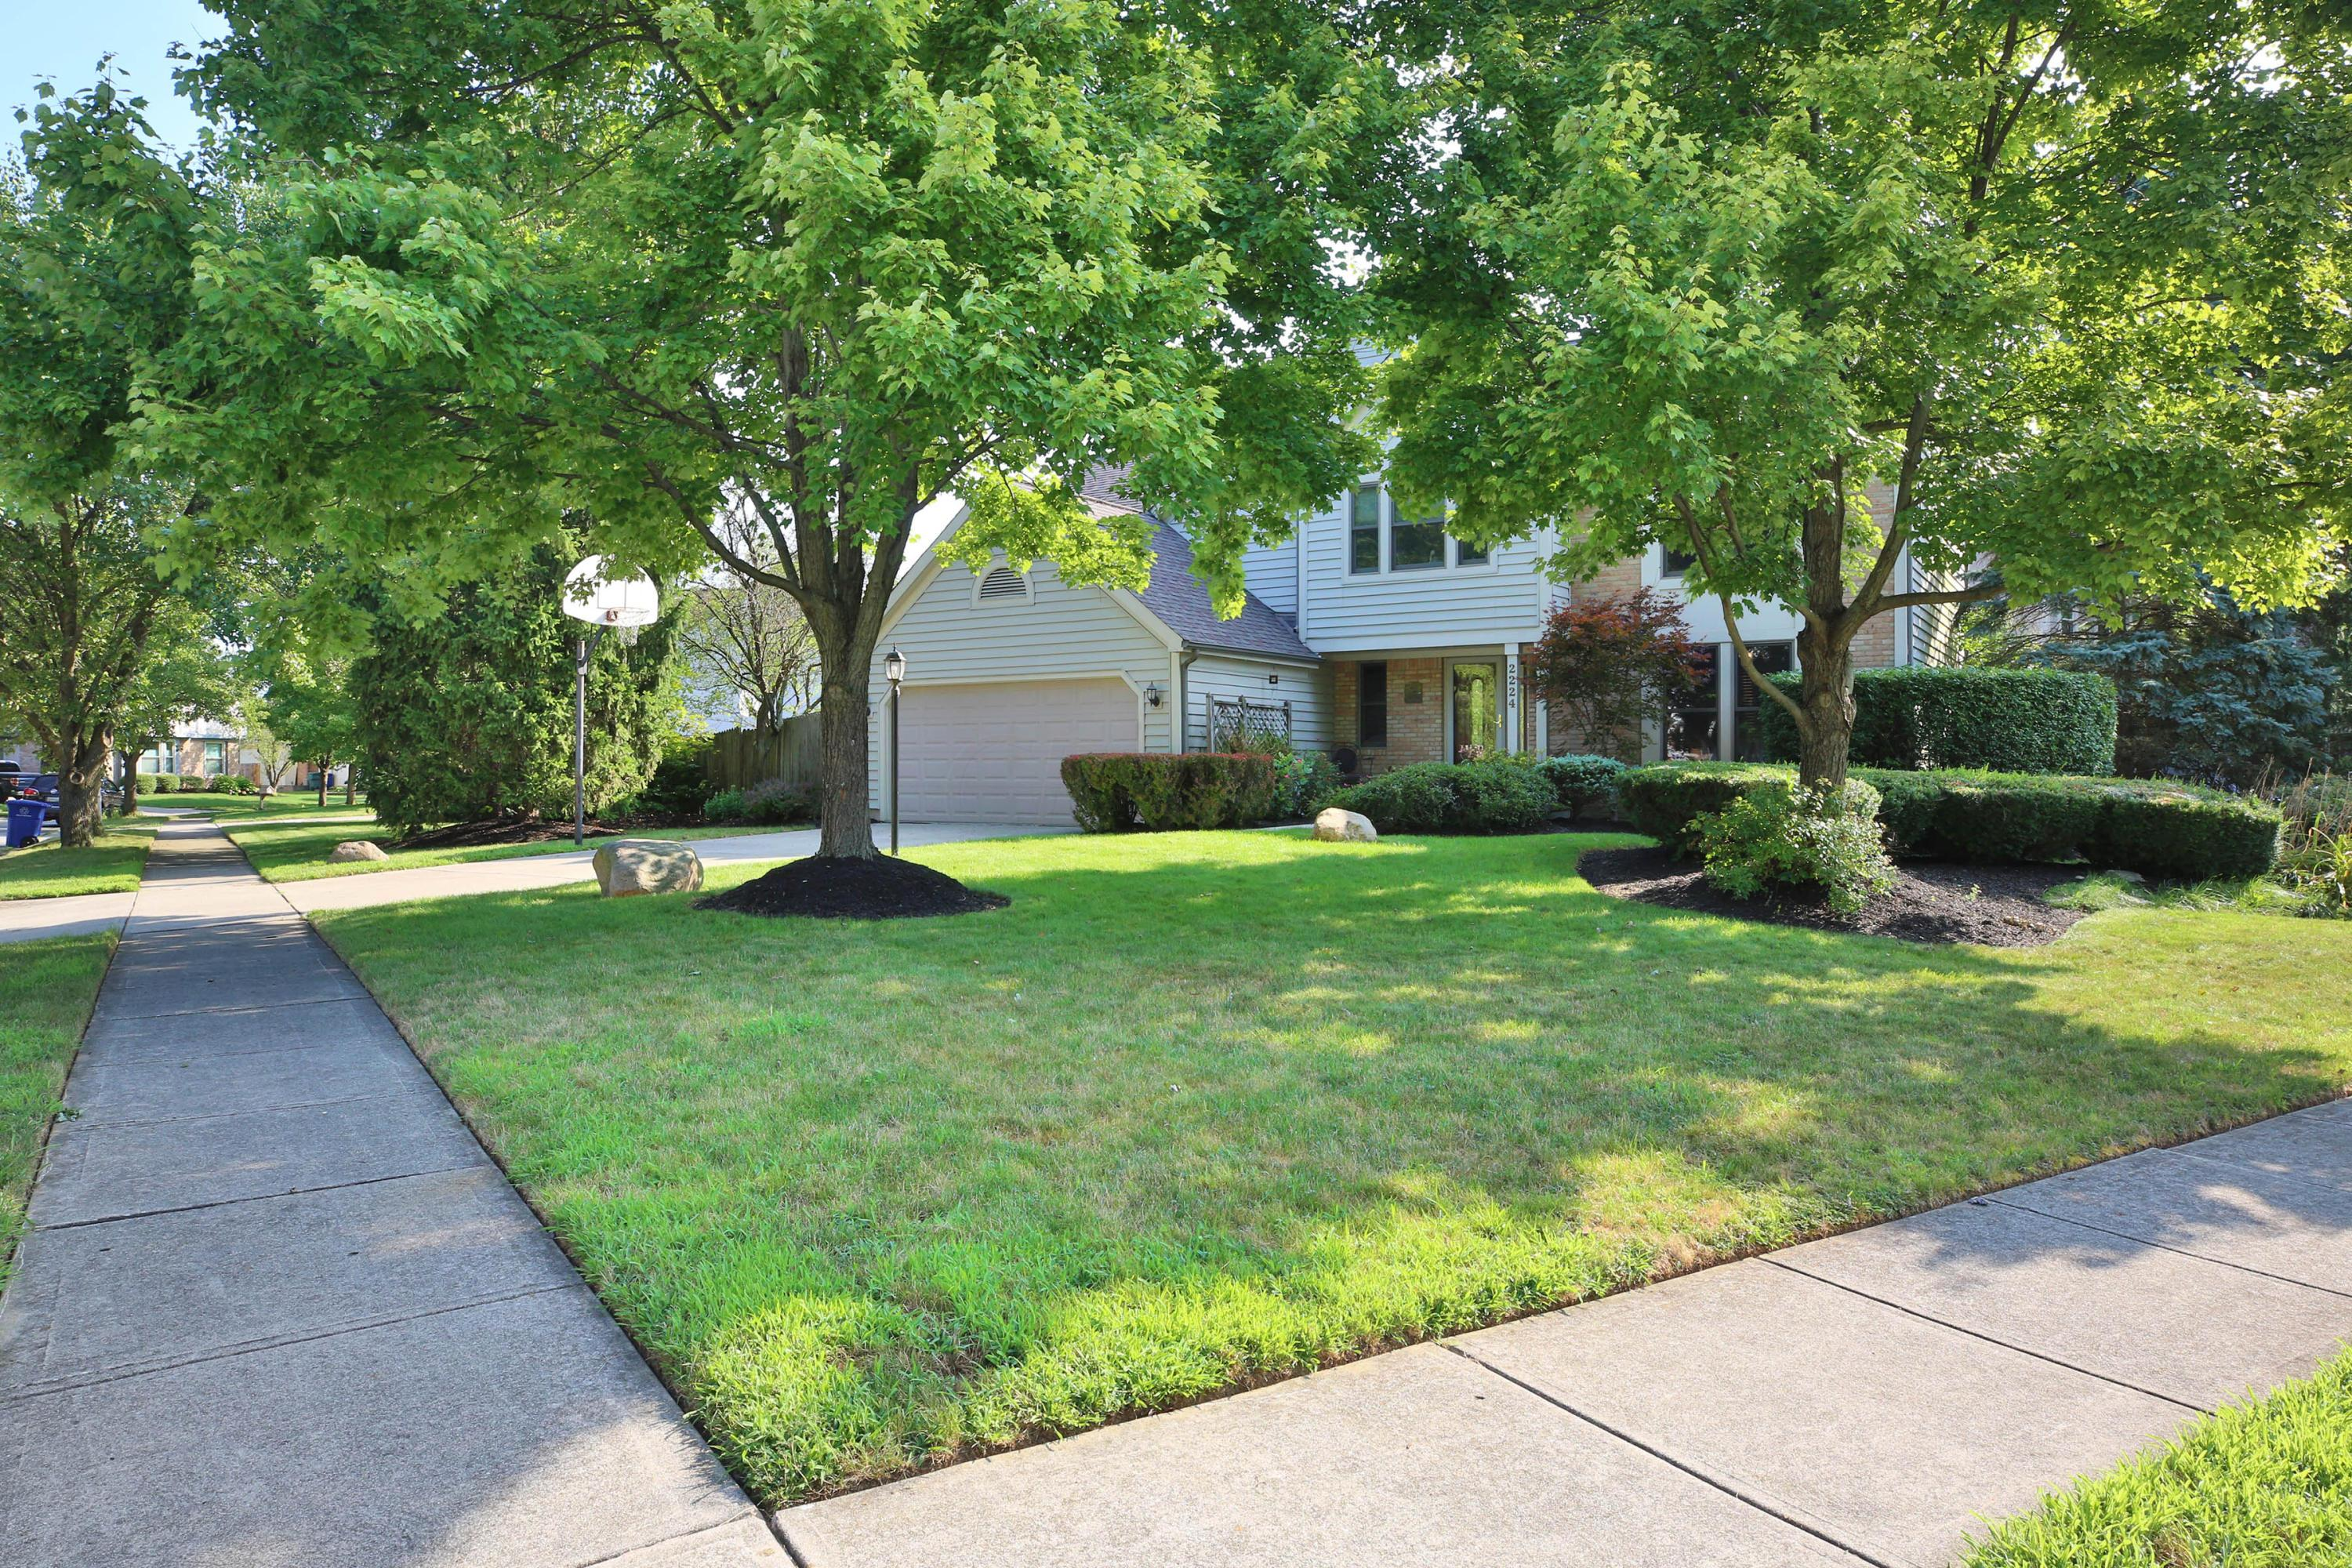 2224 Cloverdale Court, Columbus, Ohio 43235, 4 Bedrooms Bedrooms, ,3 BathroomsBathrooms,Residential,For Sale,Cloverdale,220025535